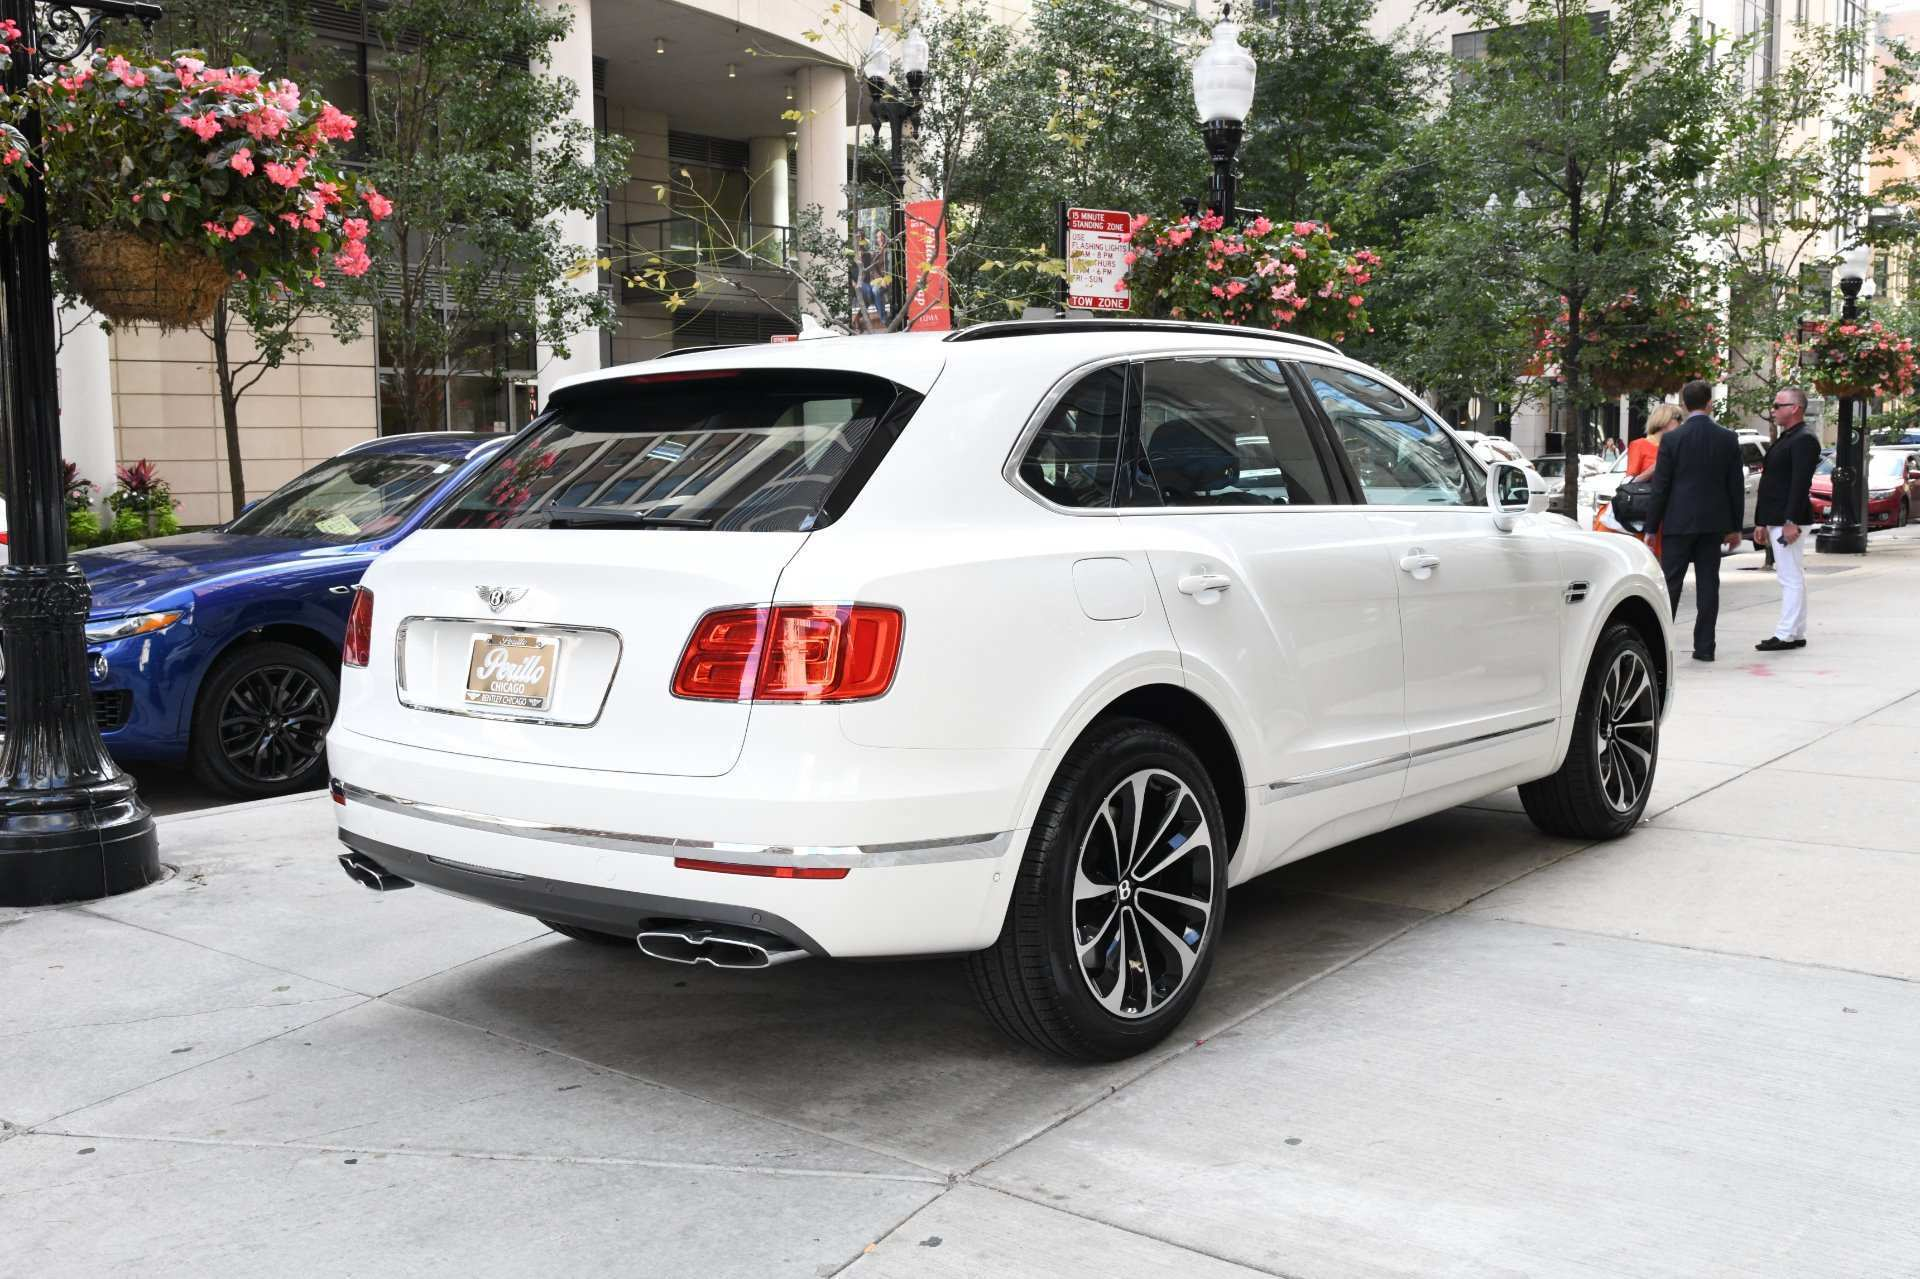 76 Best Review 2019 Bentley Bentayga V8 Price Prices by 2019 Bentley Bentayga V8 Price